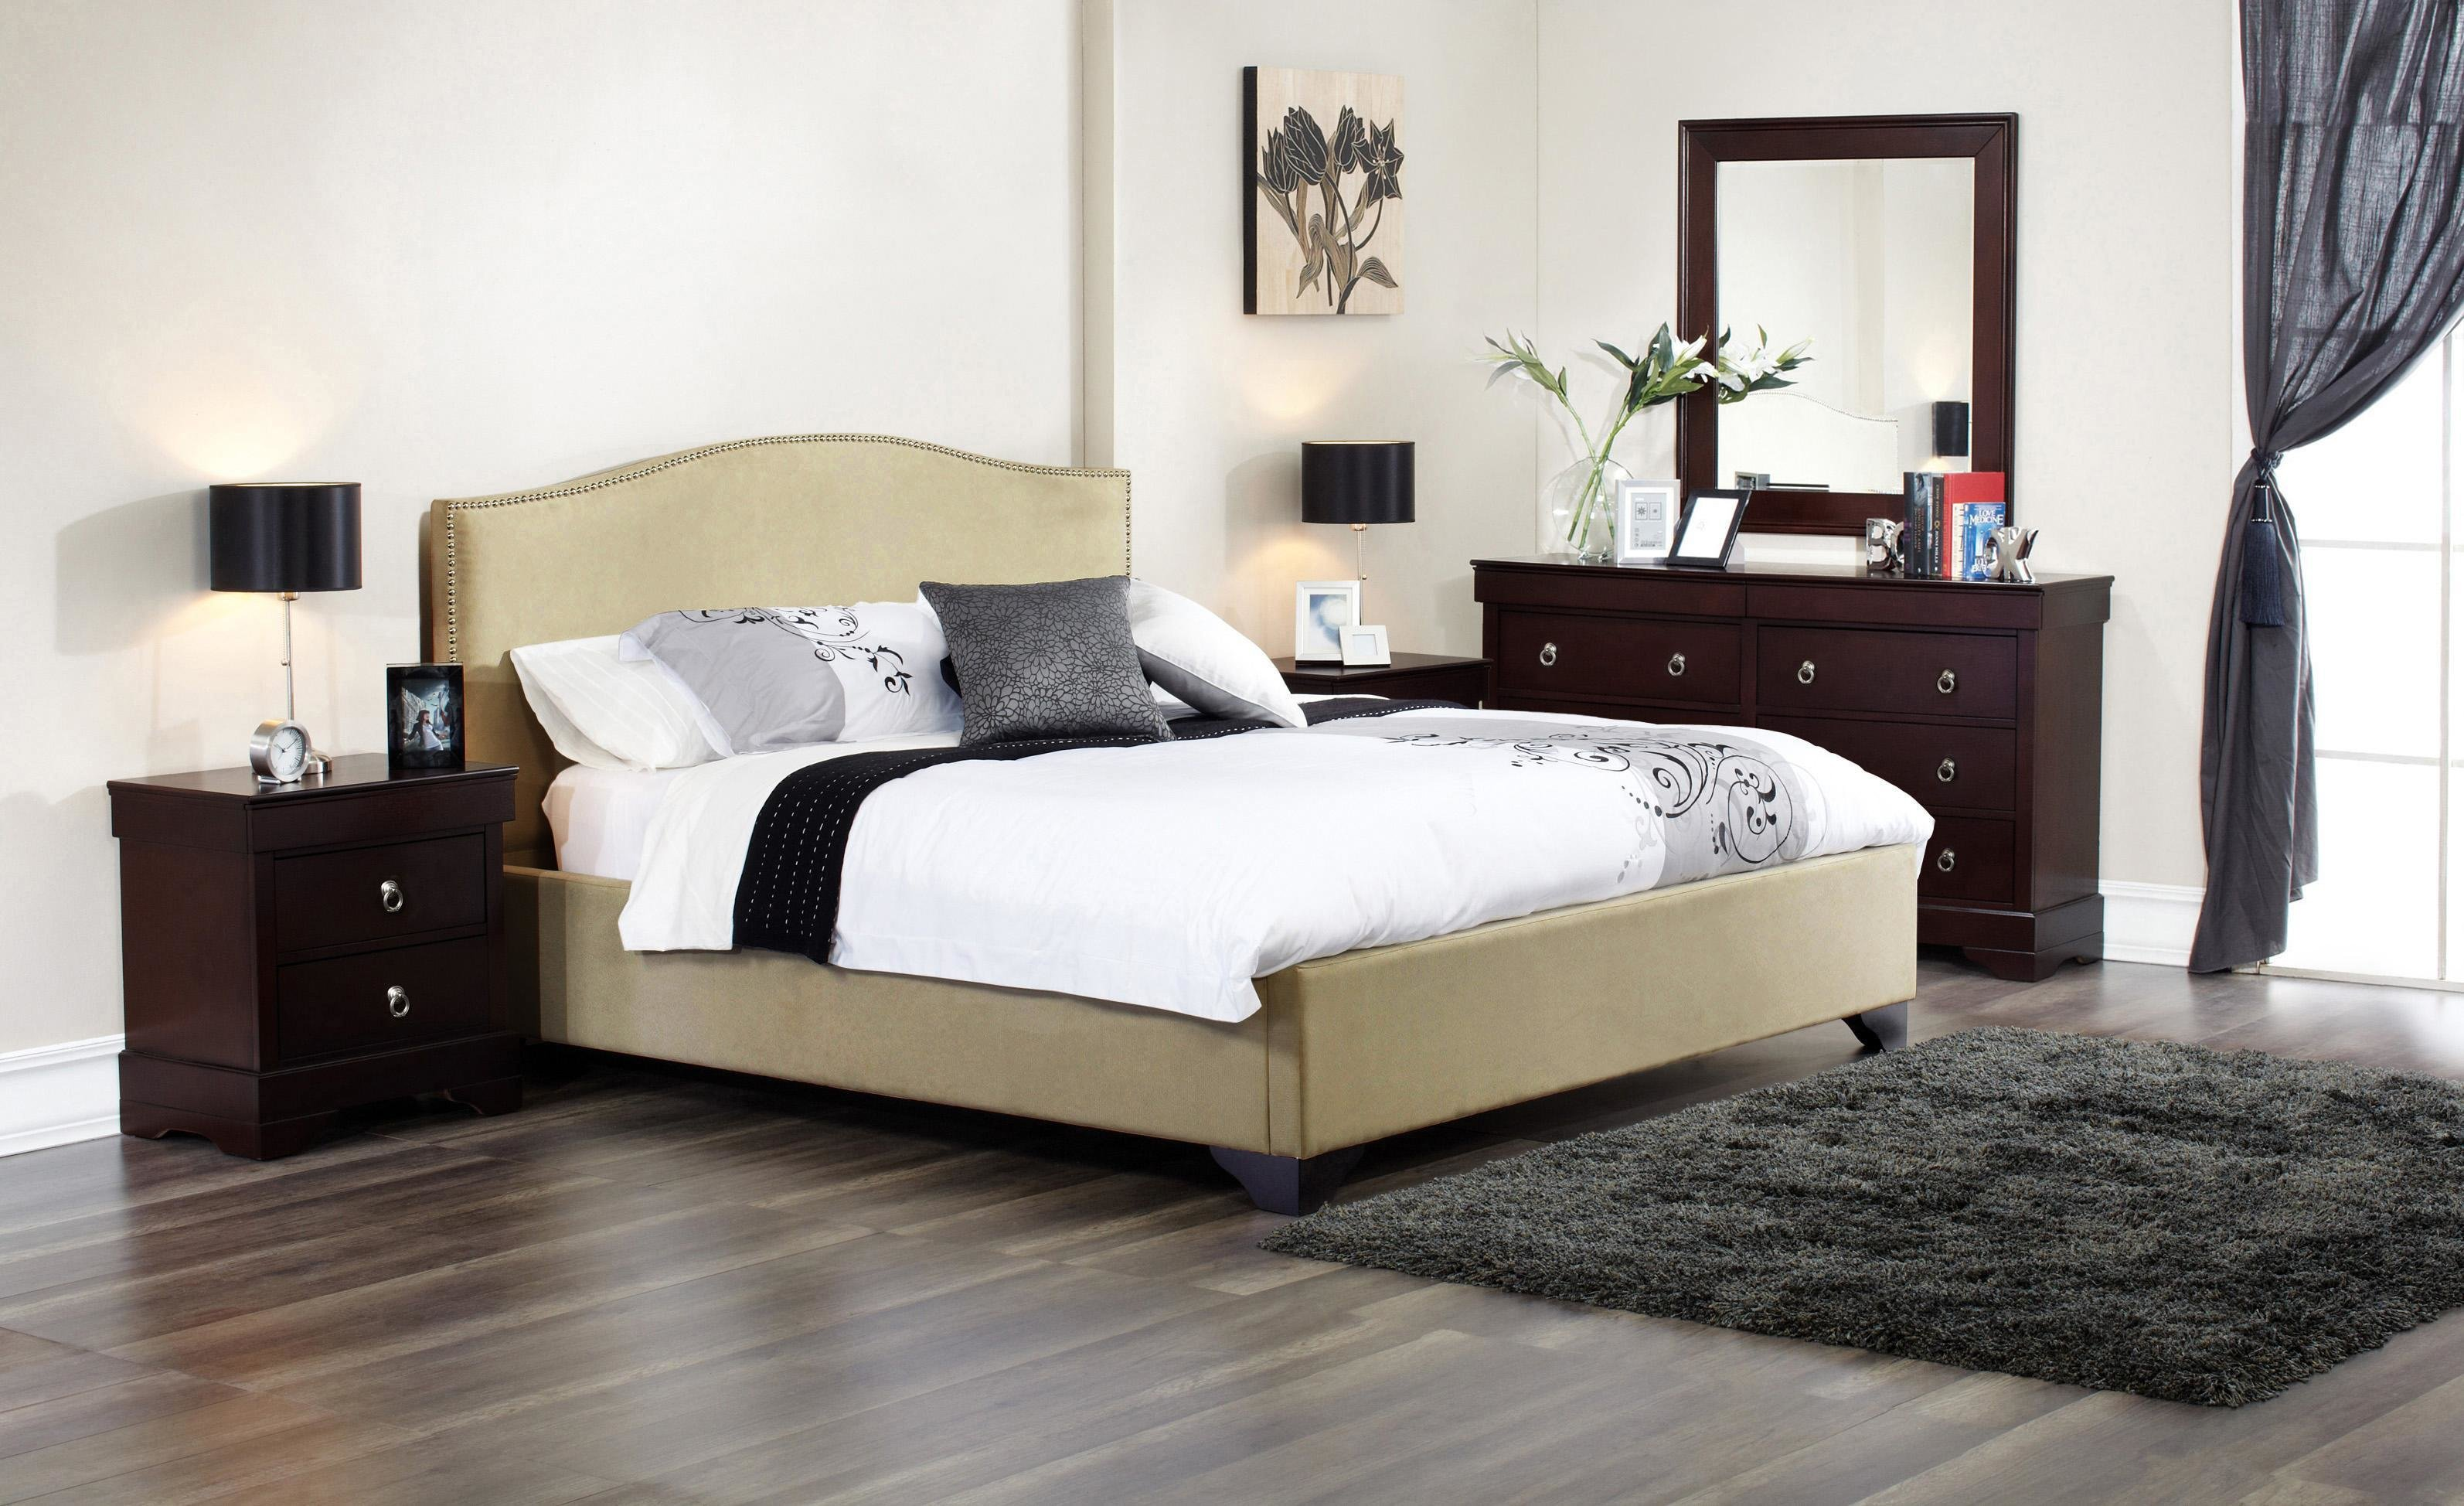 Best Magnolia Bedroom Set From 1299 99 To 1649 99 Ojcommerce With Pictures